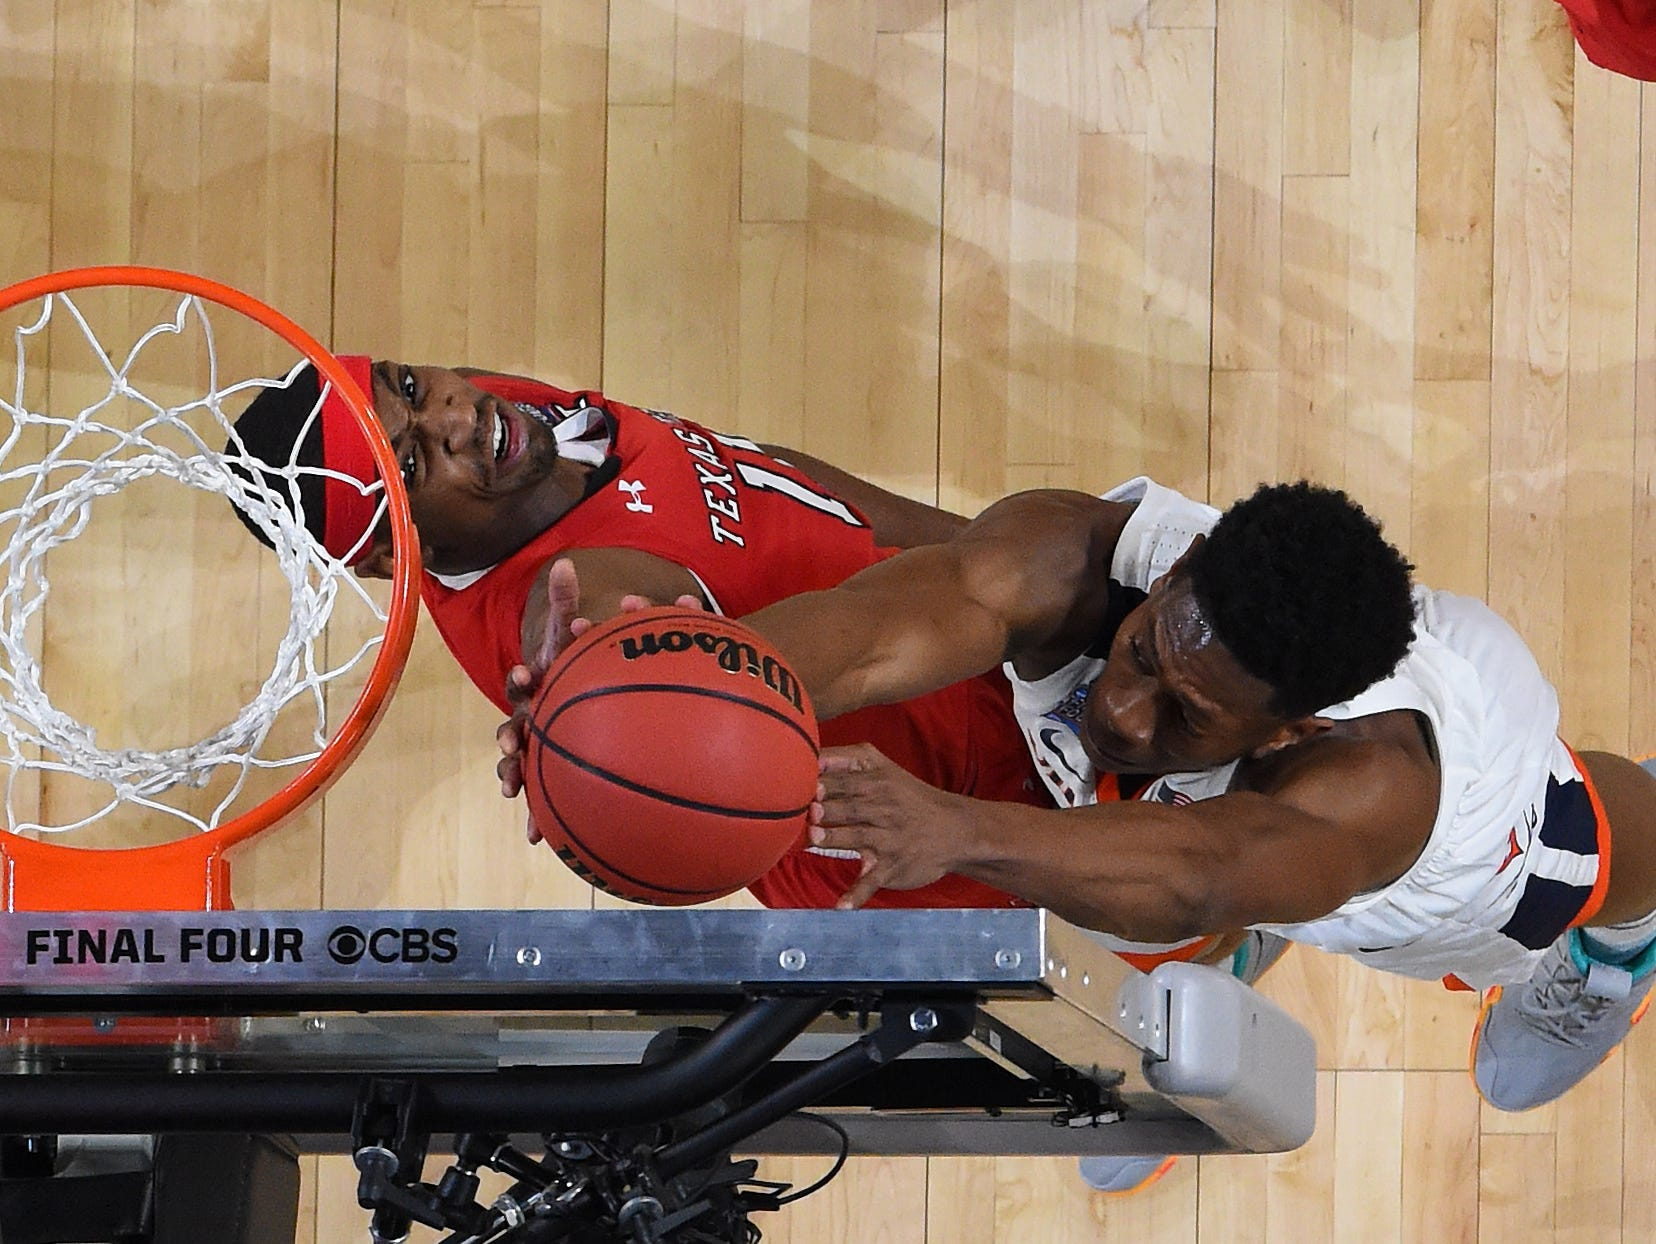 Apr 8, 2019; Minneapolis, MN, USA; Texas Tech Red Raiders forward Tariq Owens (11) blocks a shot attempt by Virginia Cavaliers guard De'Andre Hunter (white) during the first half in the championship game of the 2019 men's Final Four at US Bank Stadium. Mandatory Credit: Bob Donnan-USA TODAY Sports